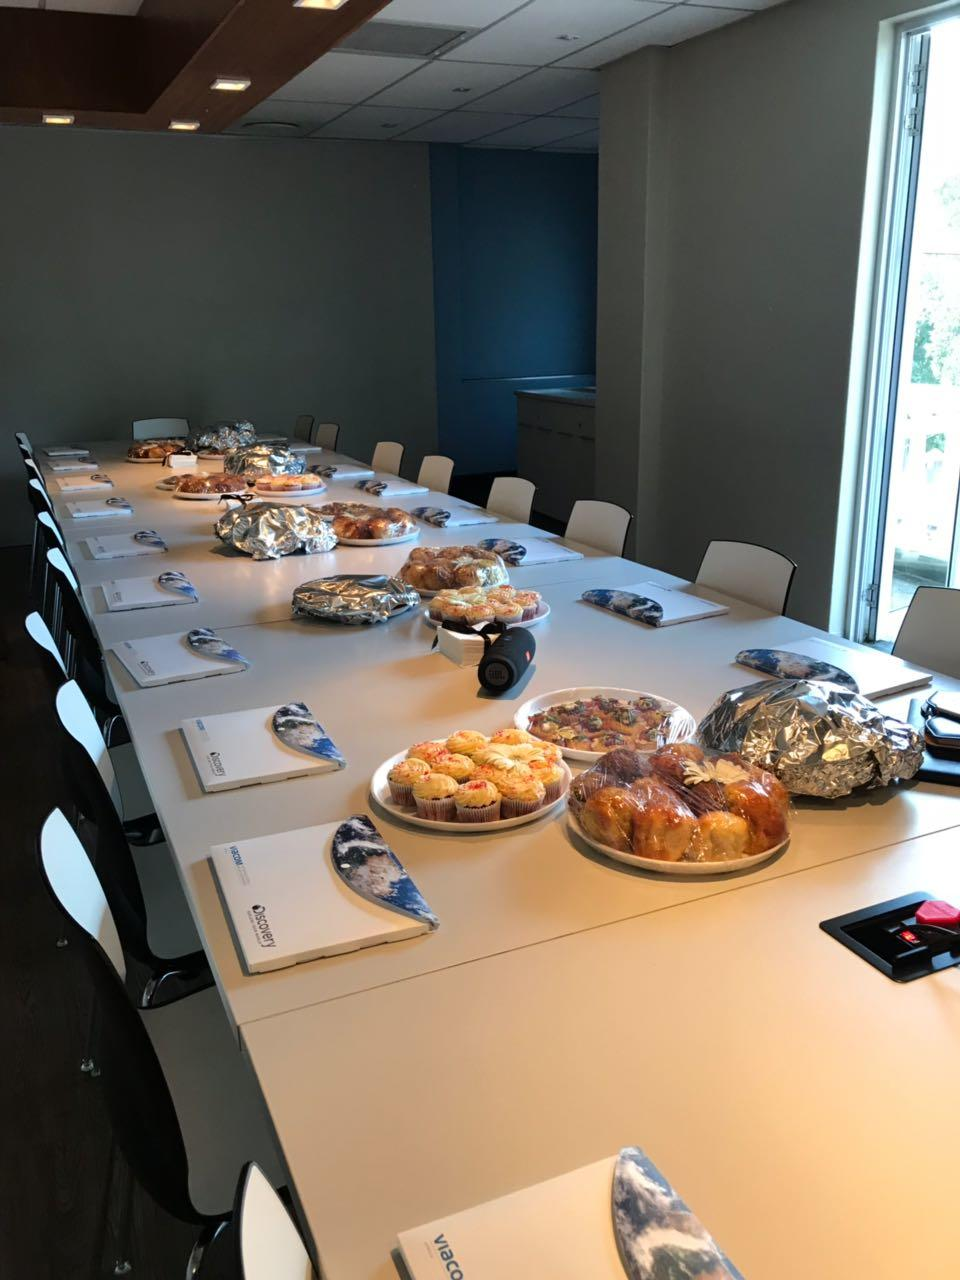 Boardroom set up for training at Viacom Networks' location